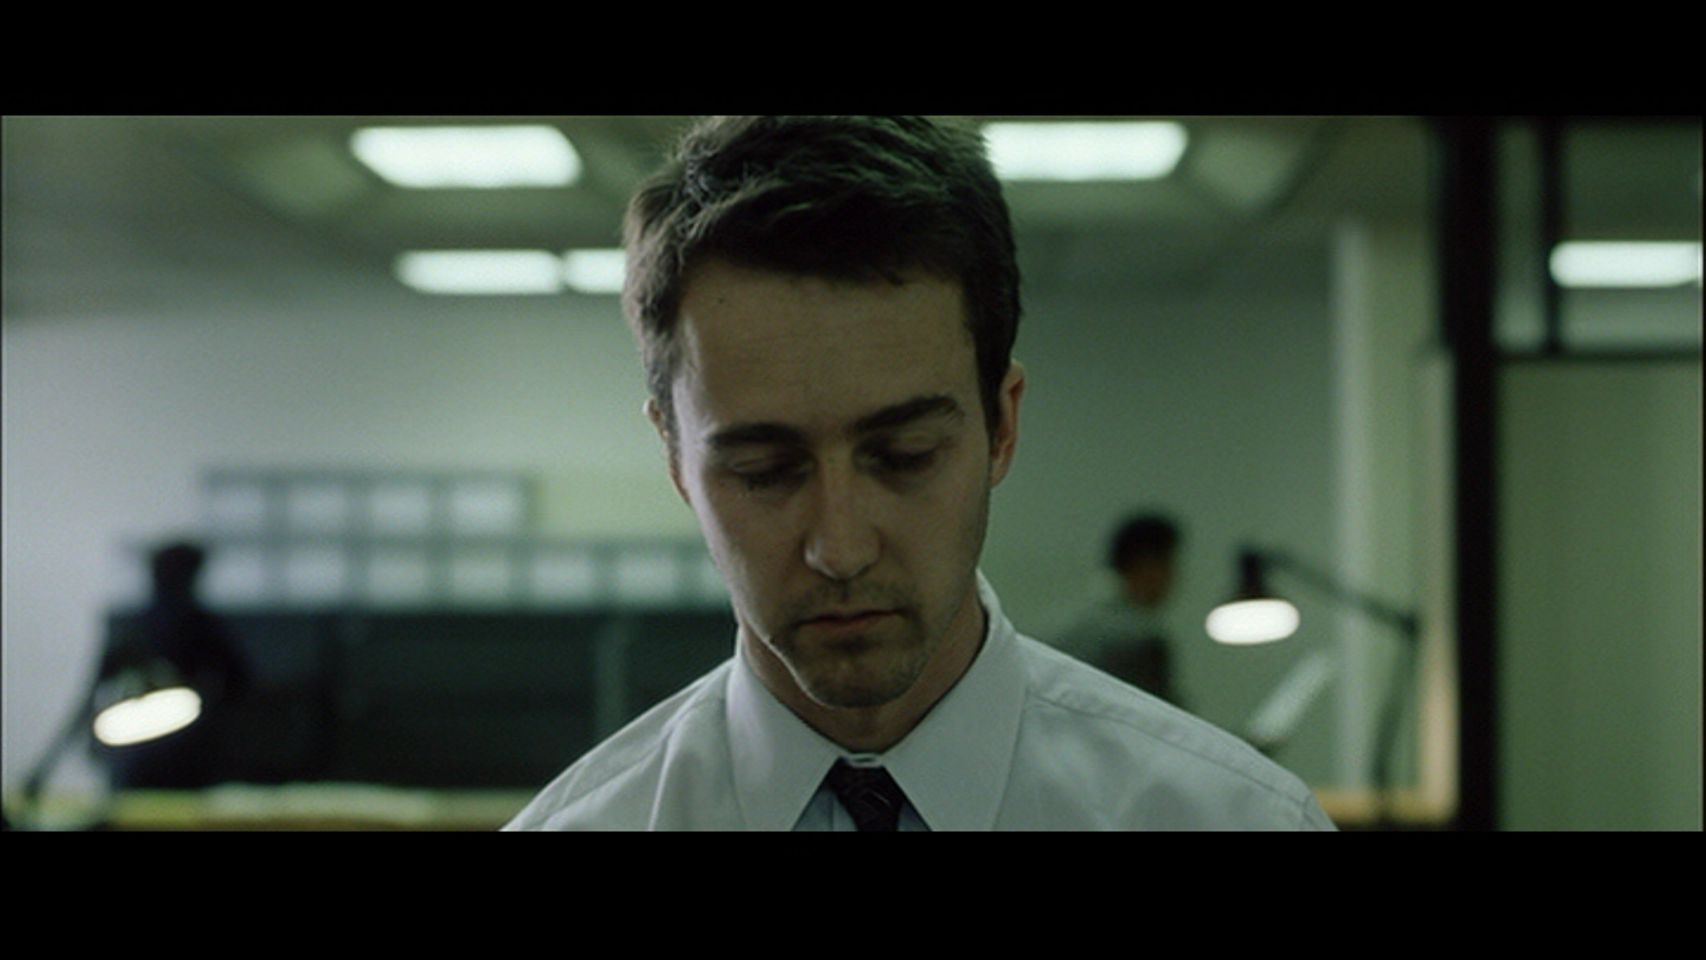 Fight Club - Fight Club Image (4646200) - Fanpop